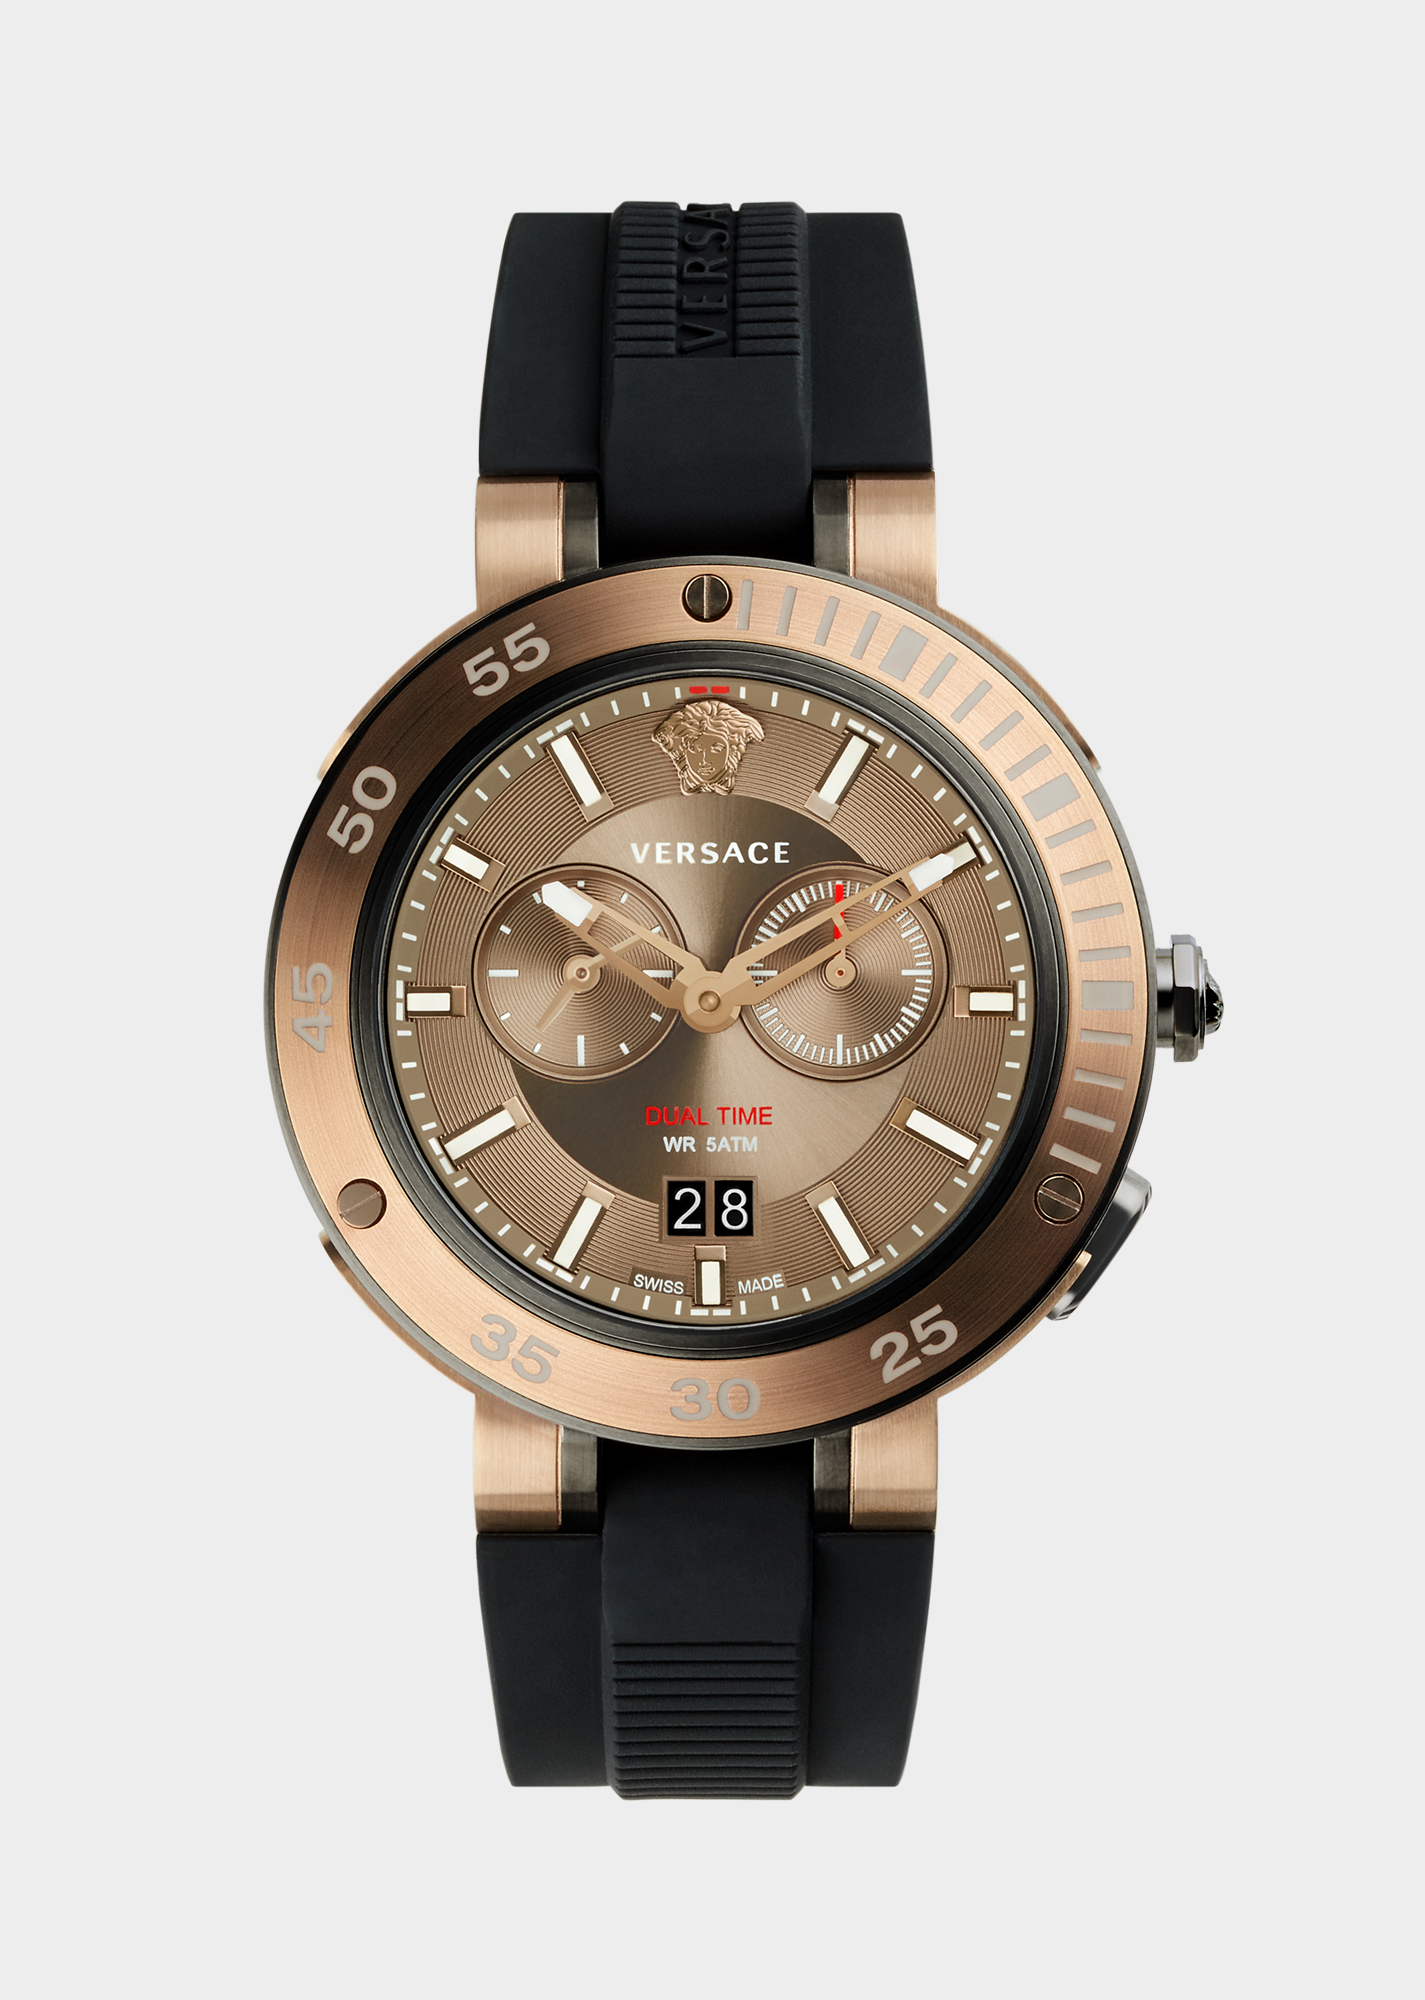 versace black v extreme pro watch for men us online store black v extreme pro watch versace watches